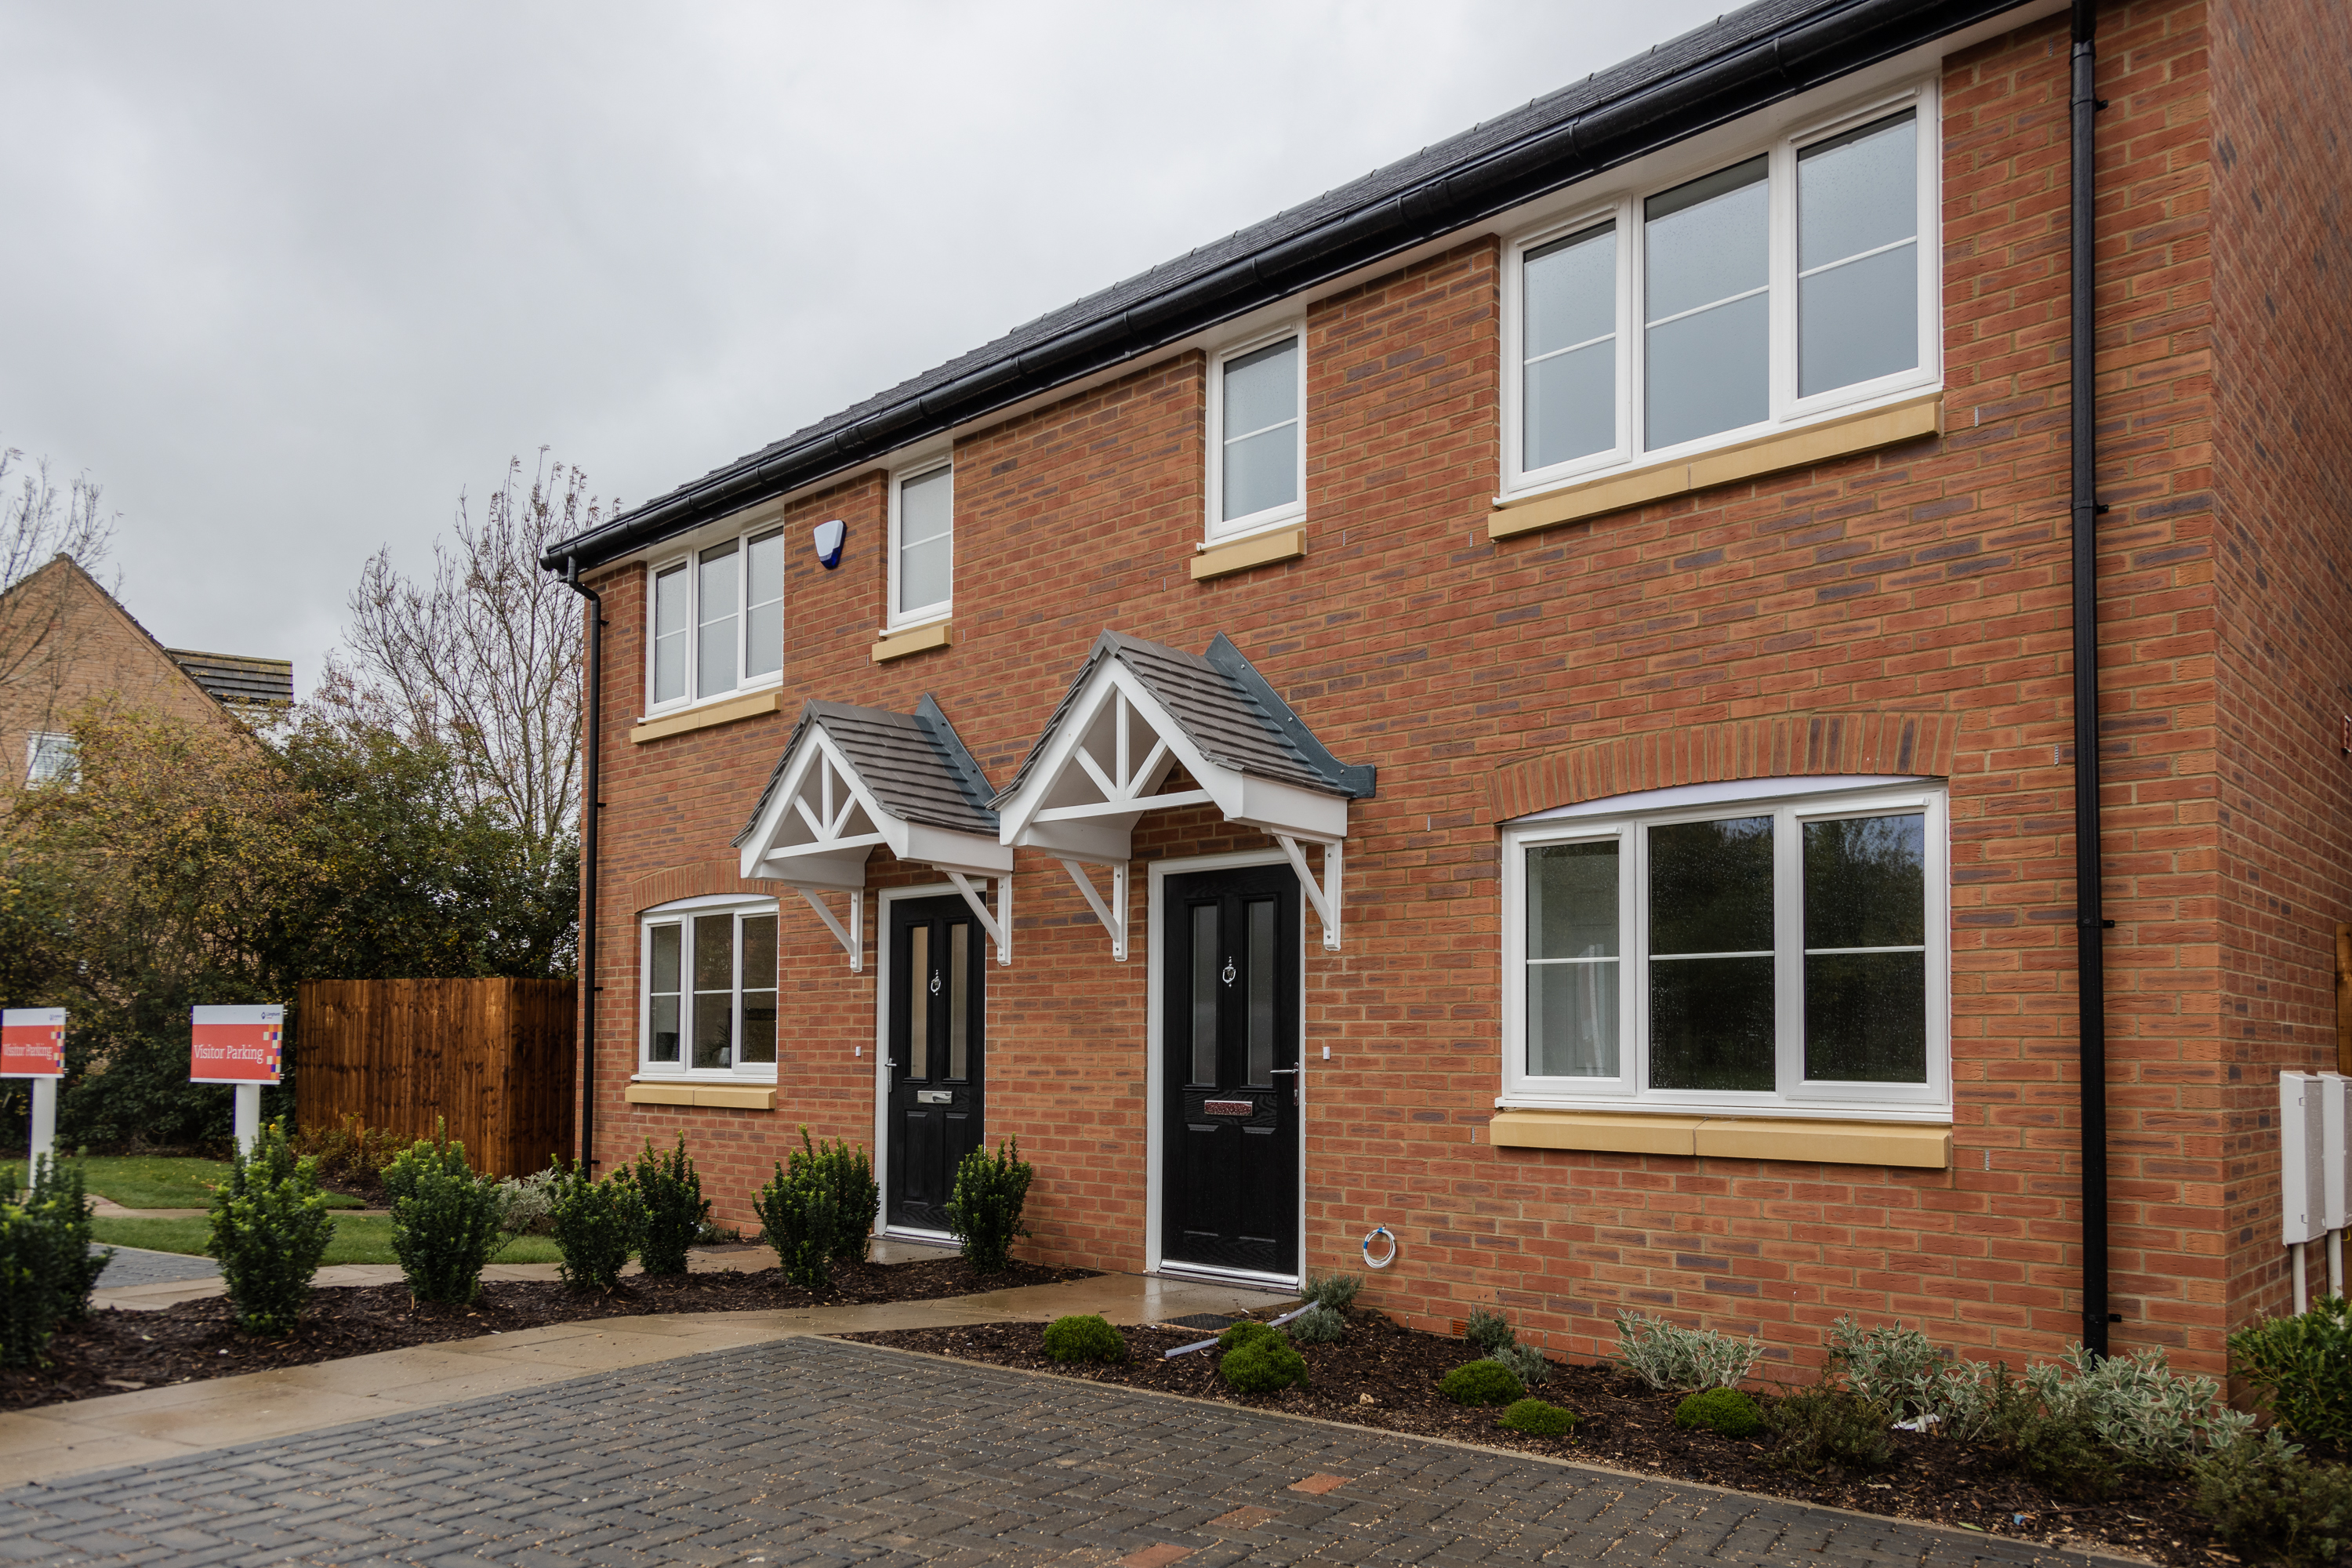 An example of a semi detached three bedroom home at The Paddocks in Littleport